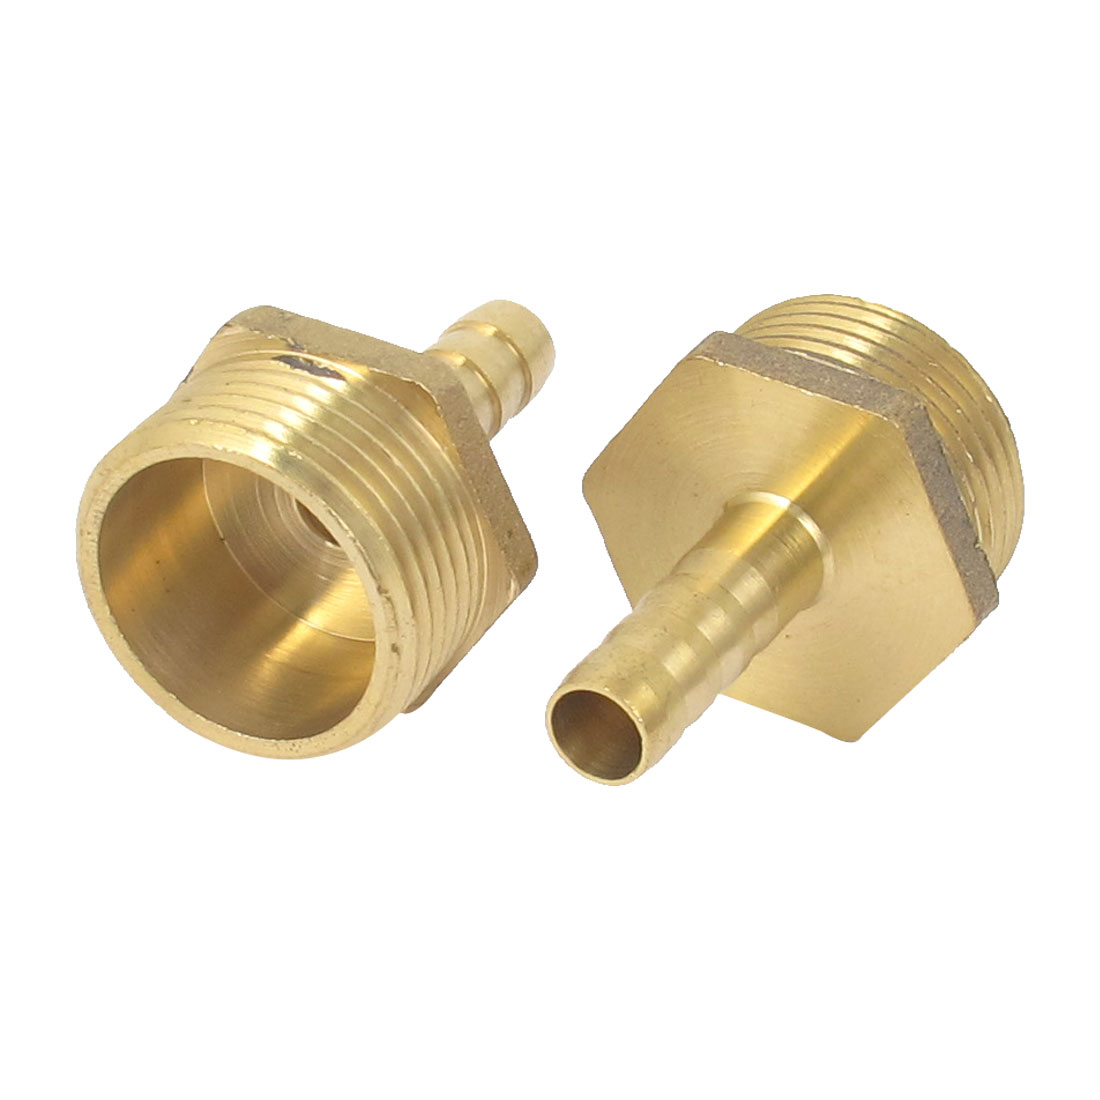 Brass 3/4BSP Male Thread to 8mm Hose Barb Straight Fitting Adapter Coupler 2PCS